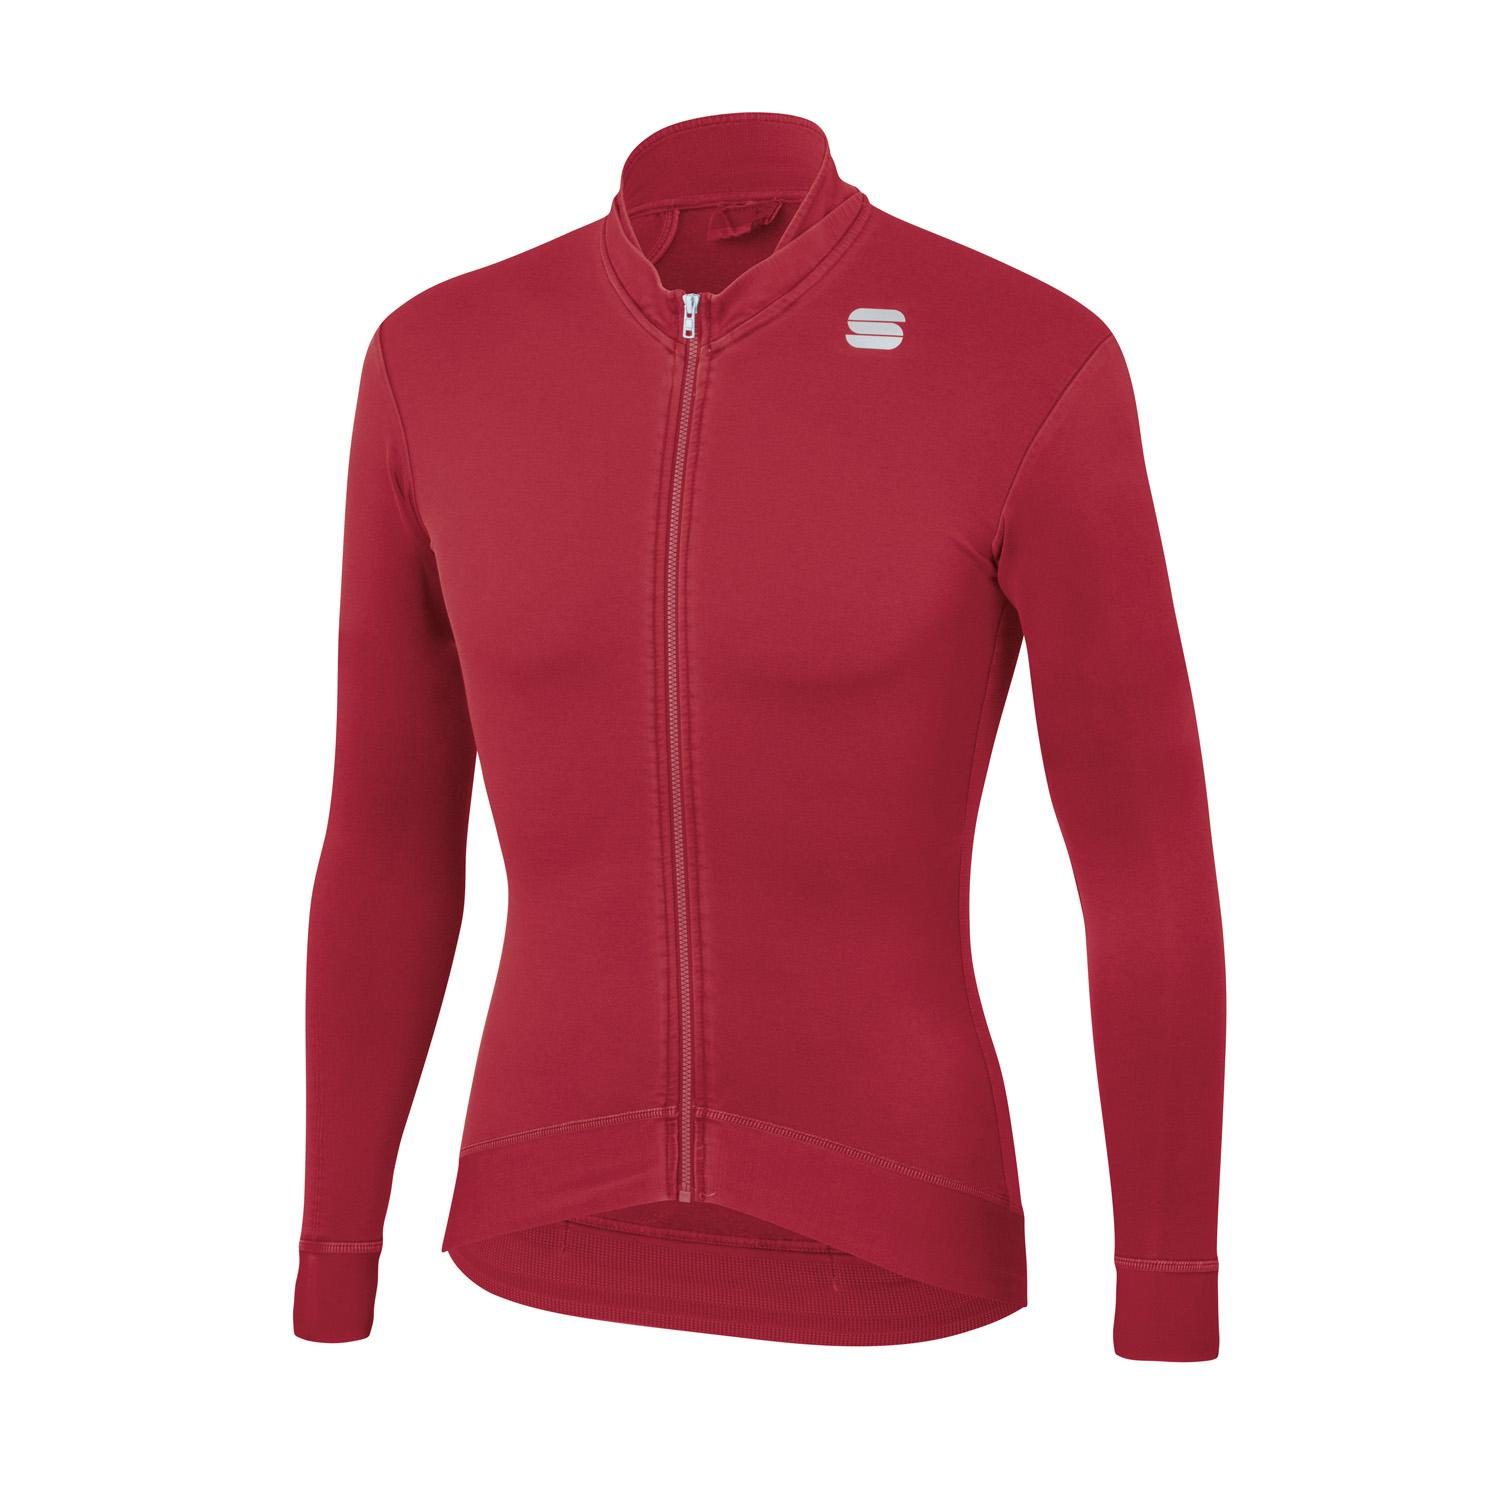 Sportful Fietsshirt lange mouwen Heren Rood - MONOCROM THERMAL JERSEY RED RUMBA